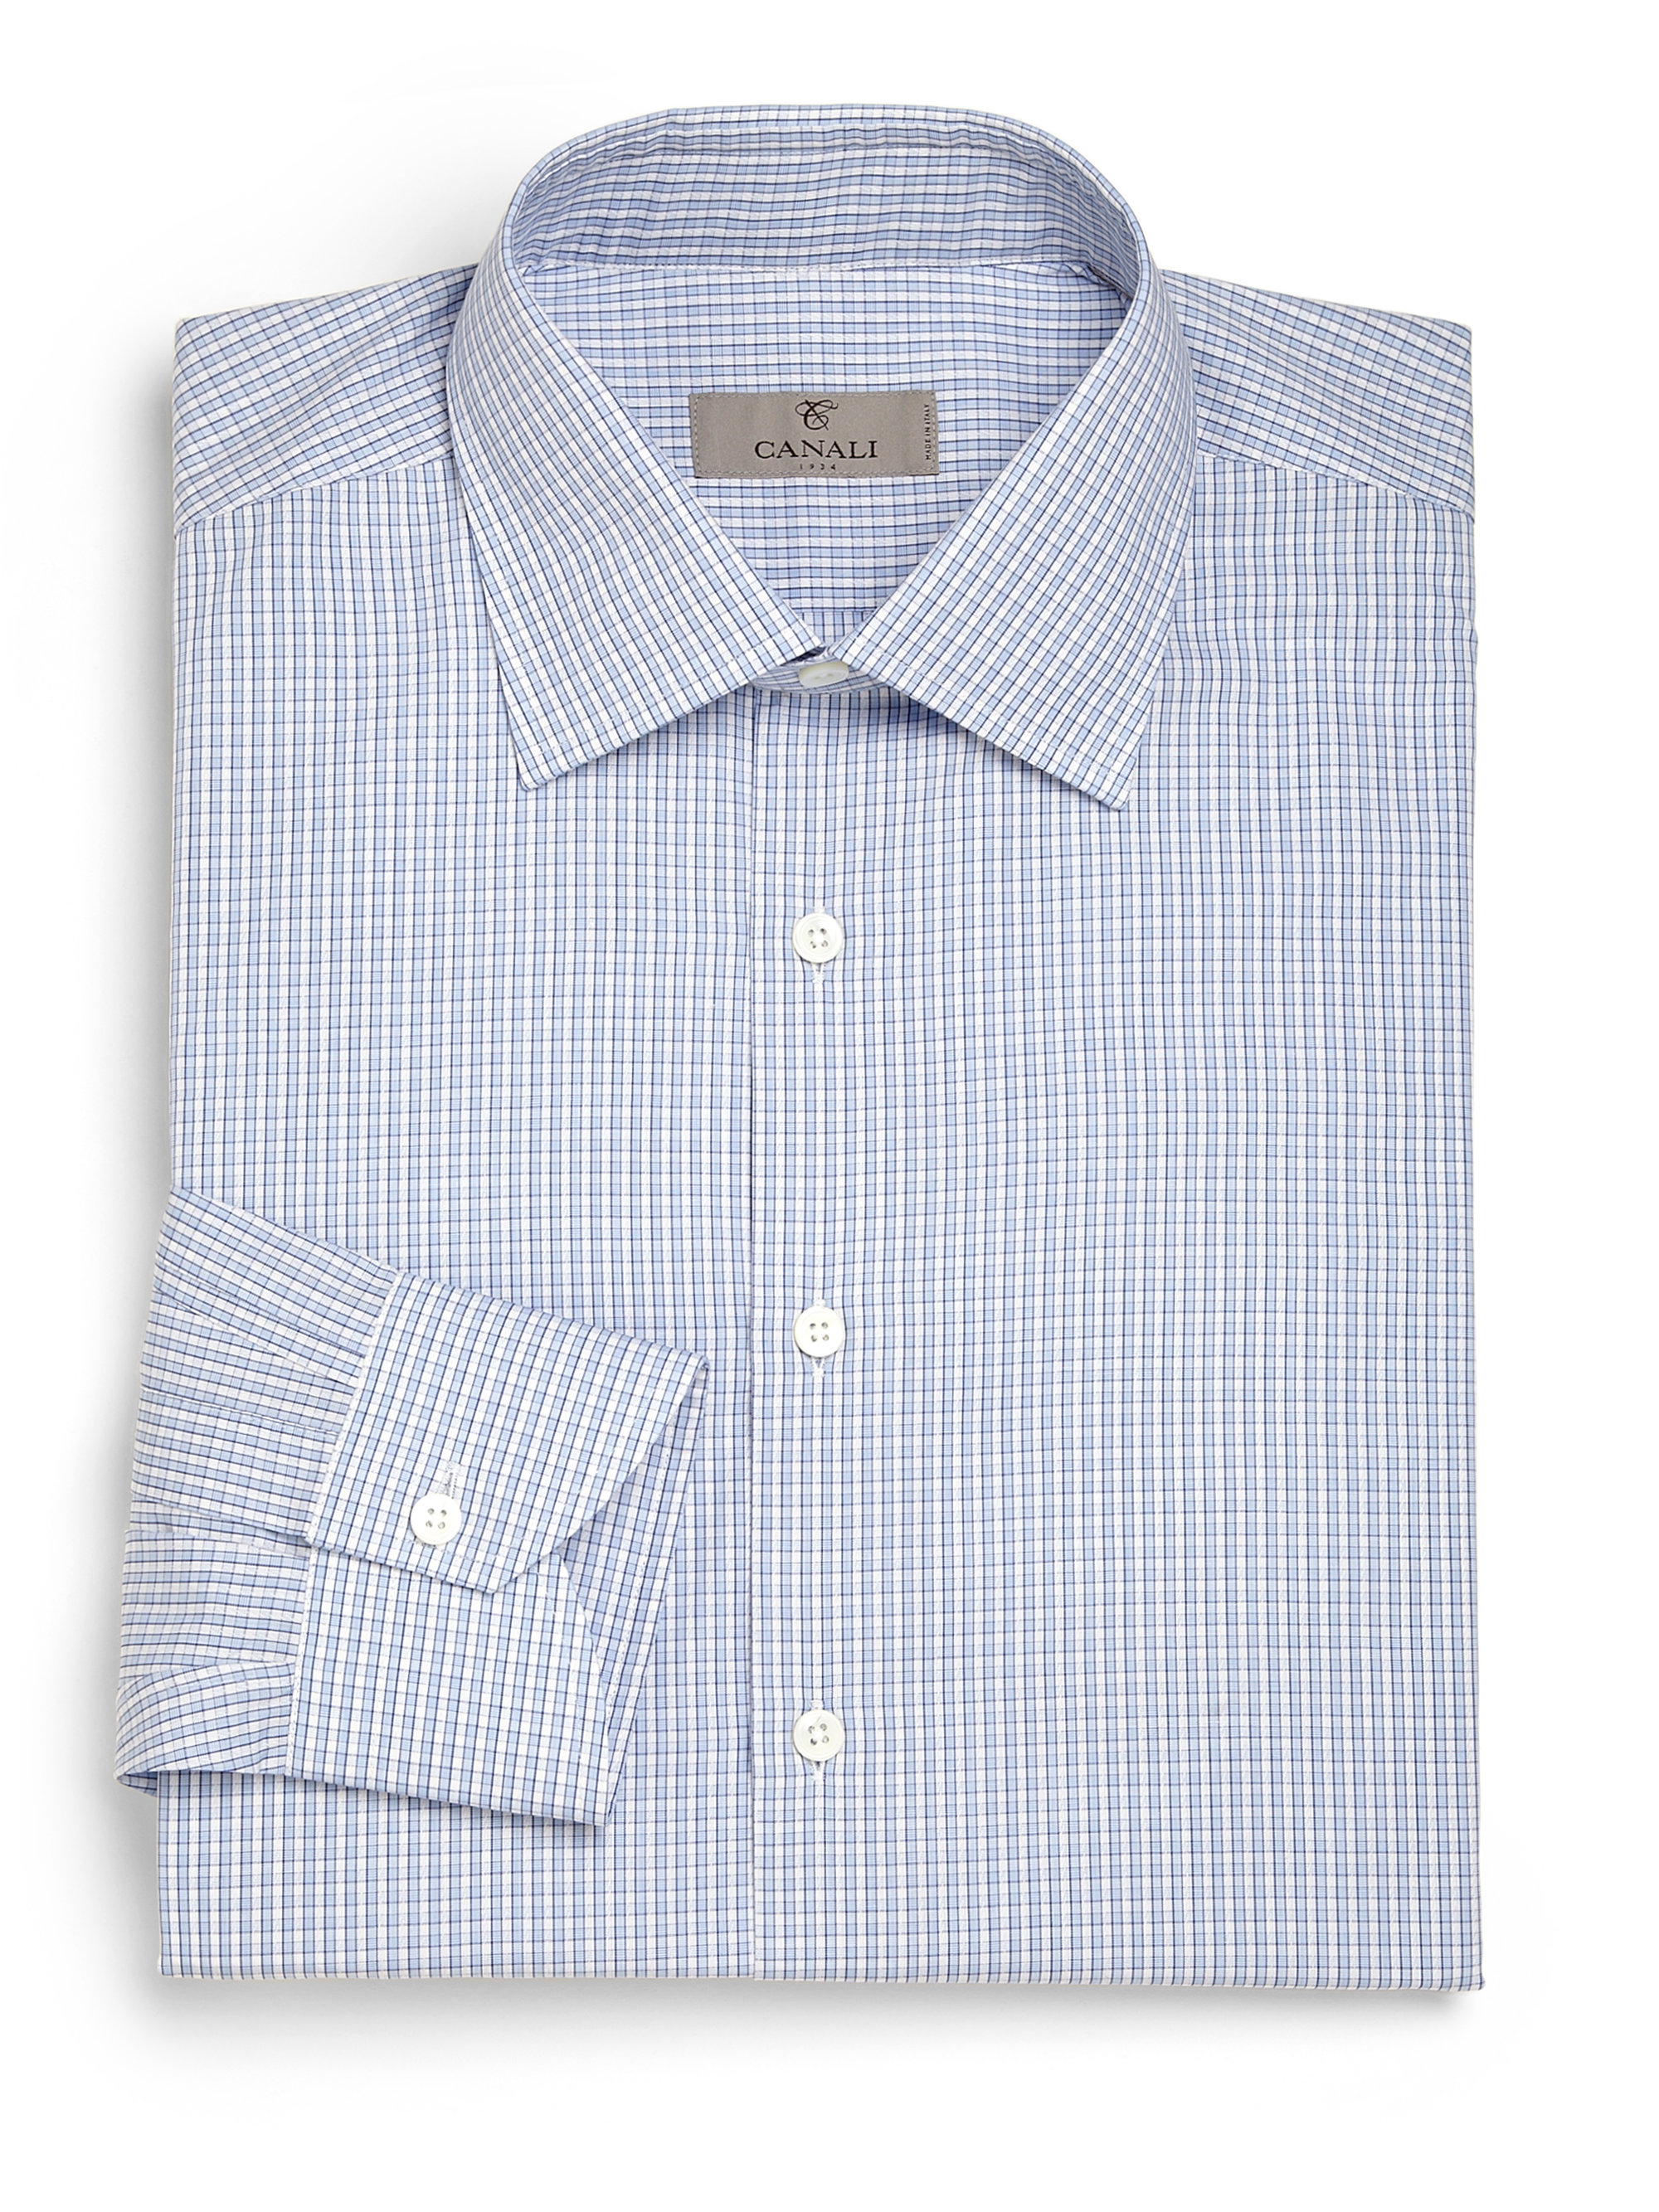 Canali modern fit checked dress shirt in blue for men lyst for Modern fit dress shirt